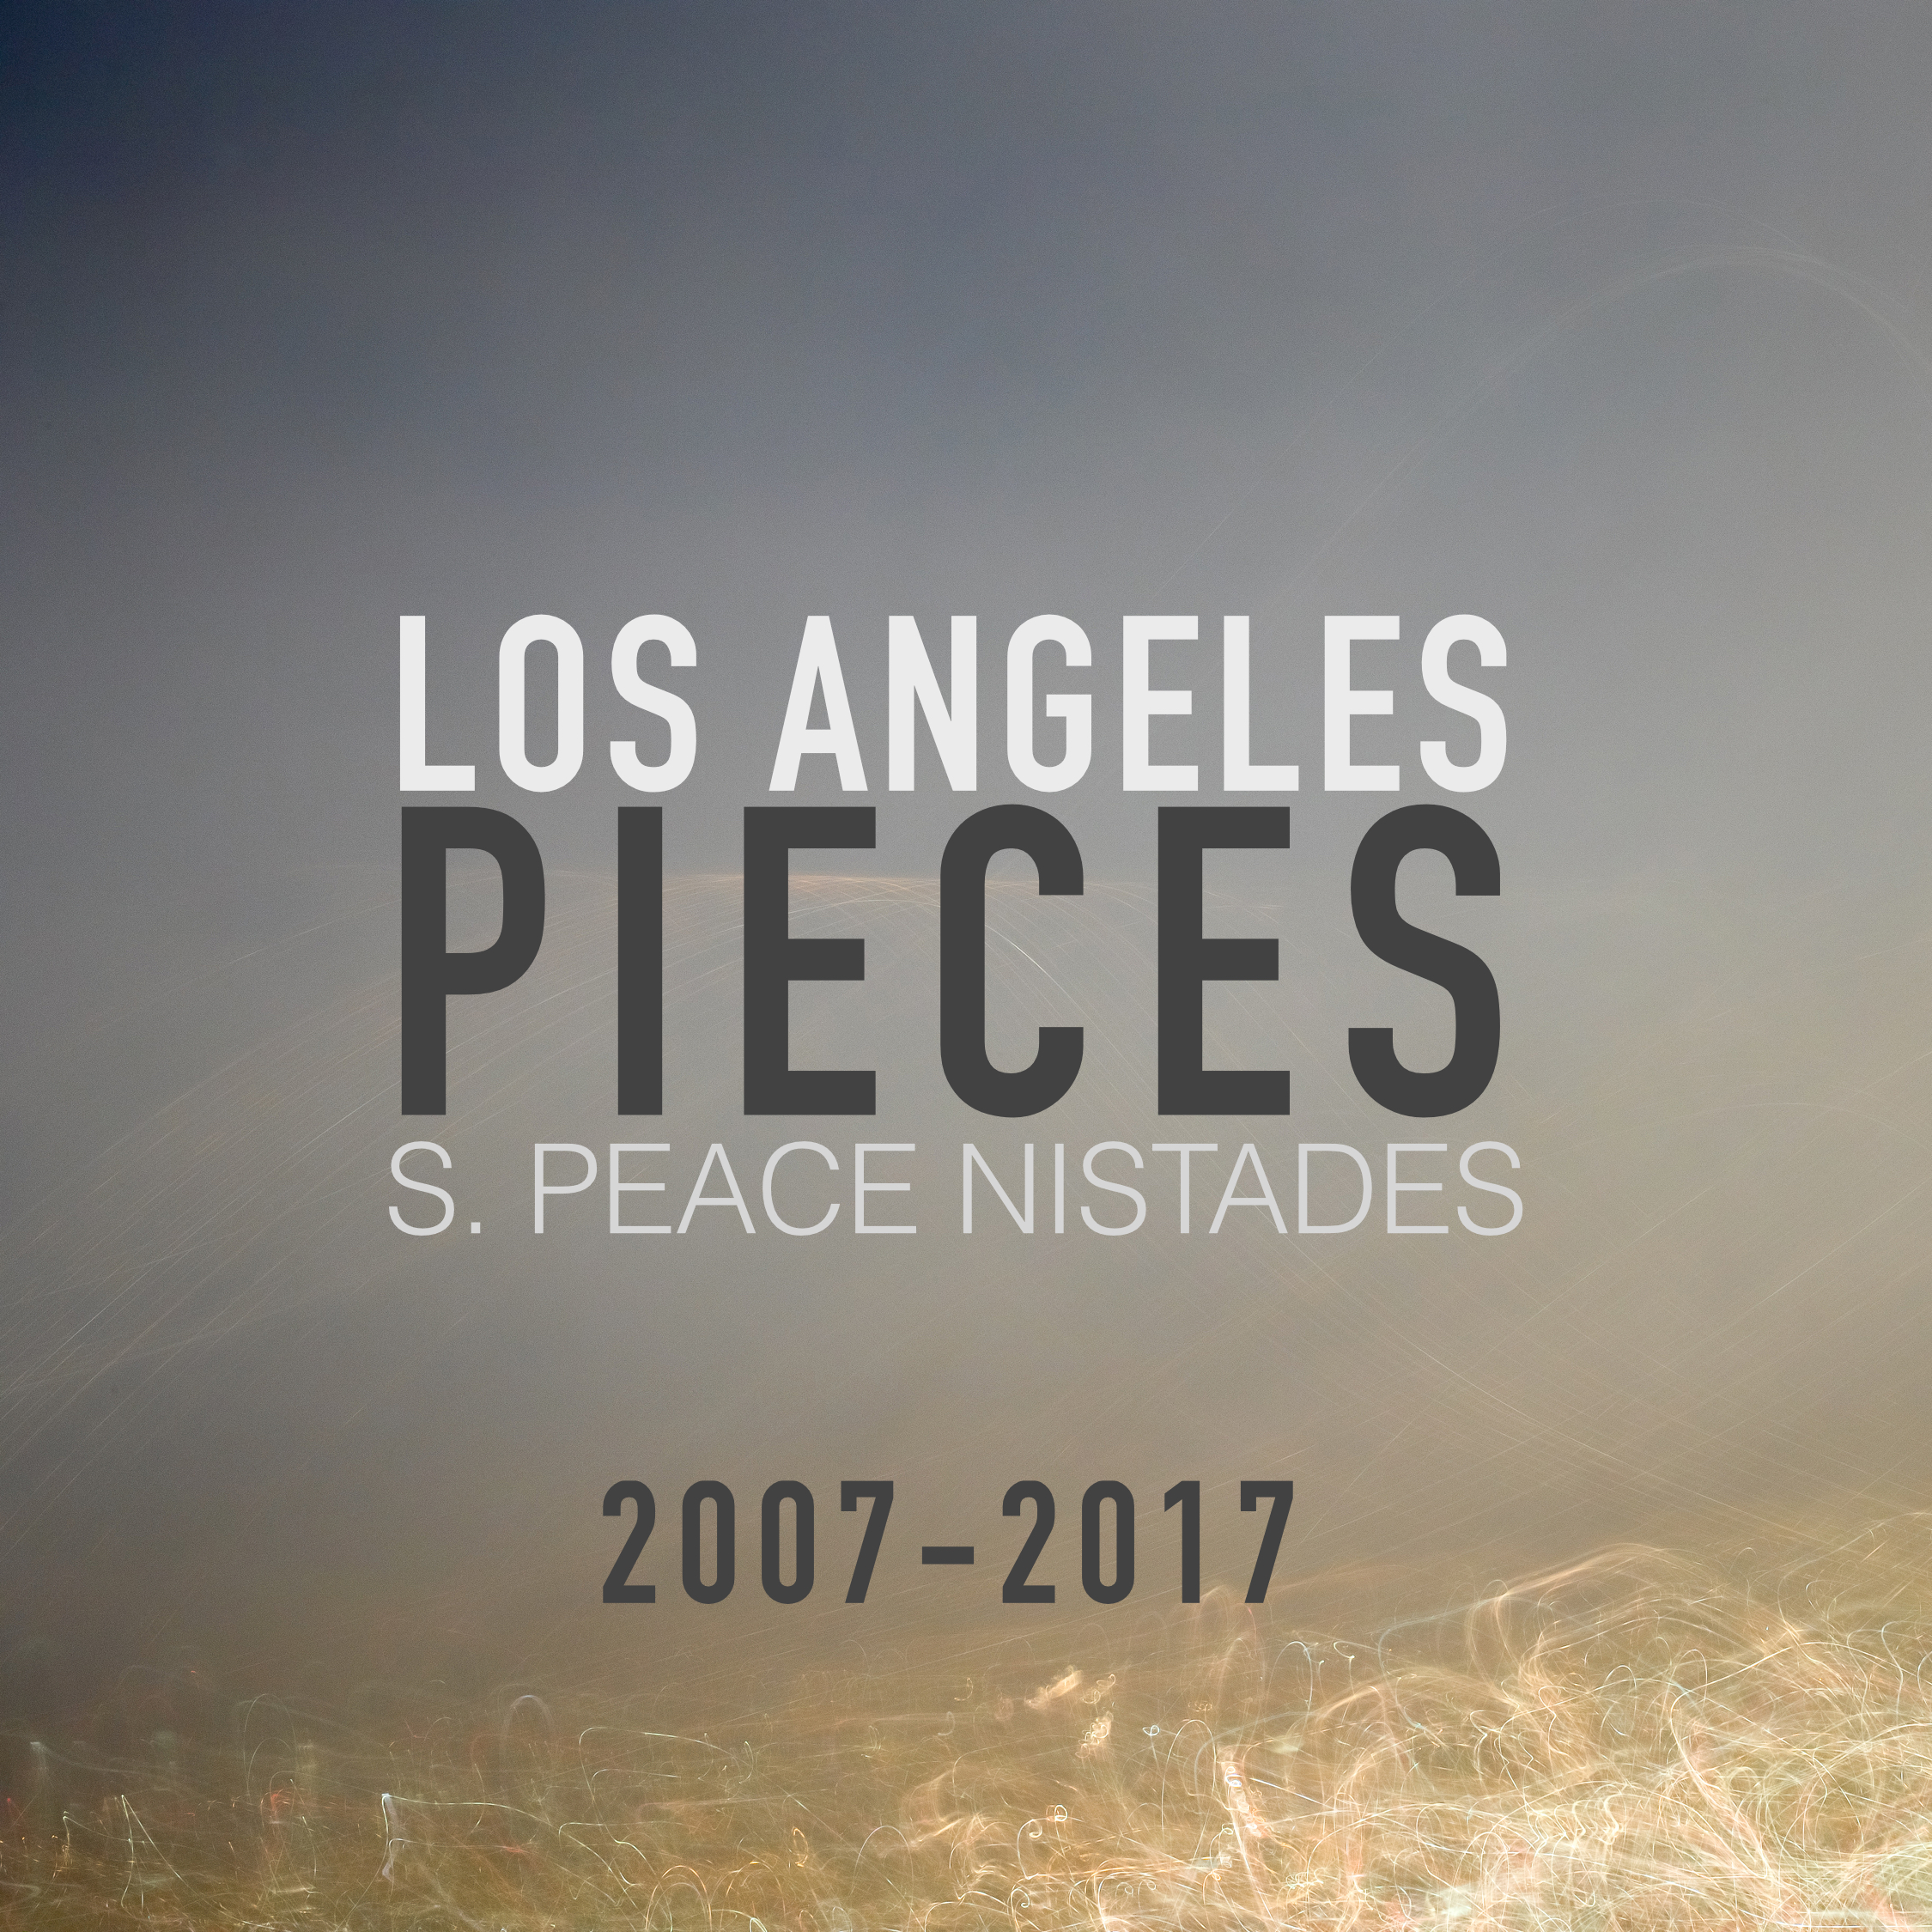 LA Pieces Album Cover.jpg